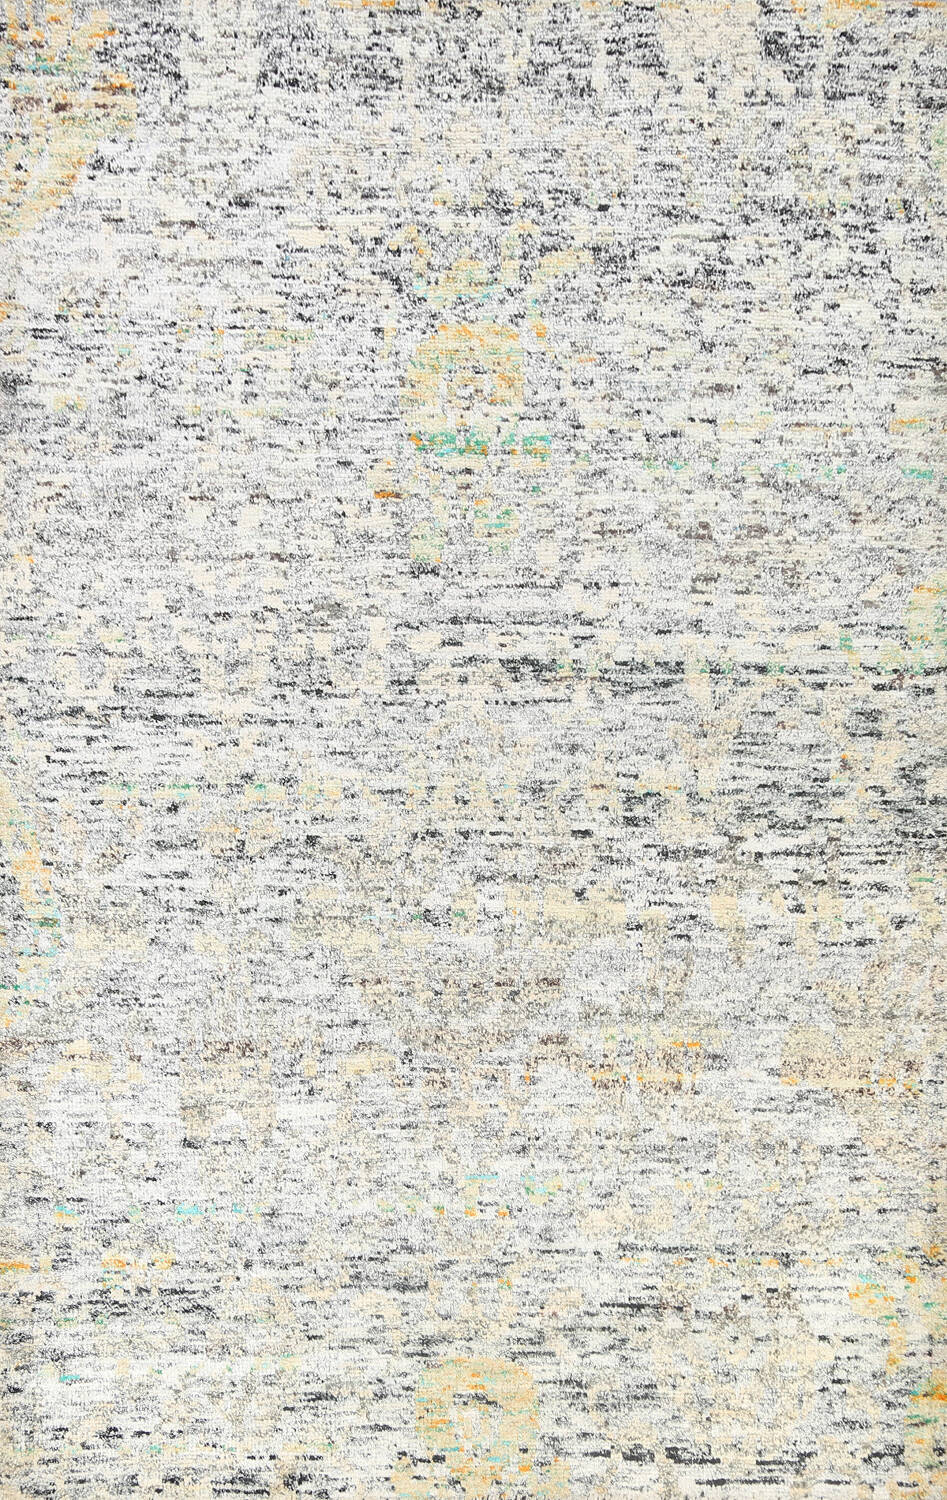 Contemporary Abstract Oriental Area Rug 6x9 image 1